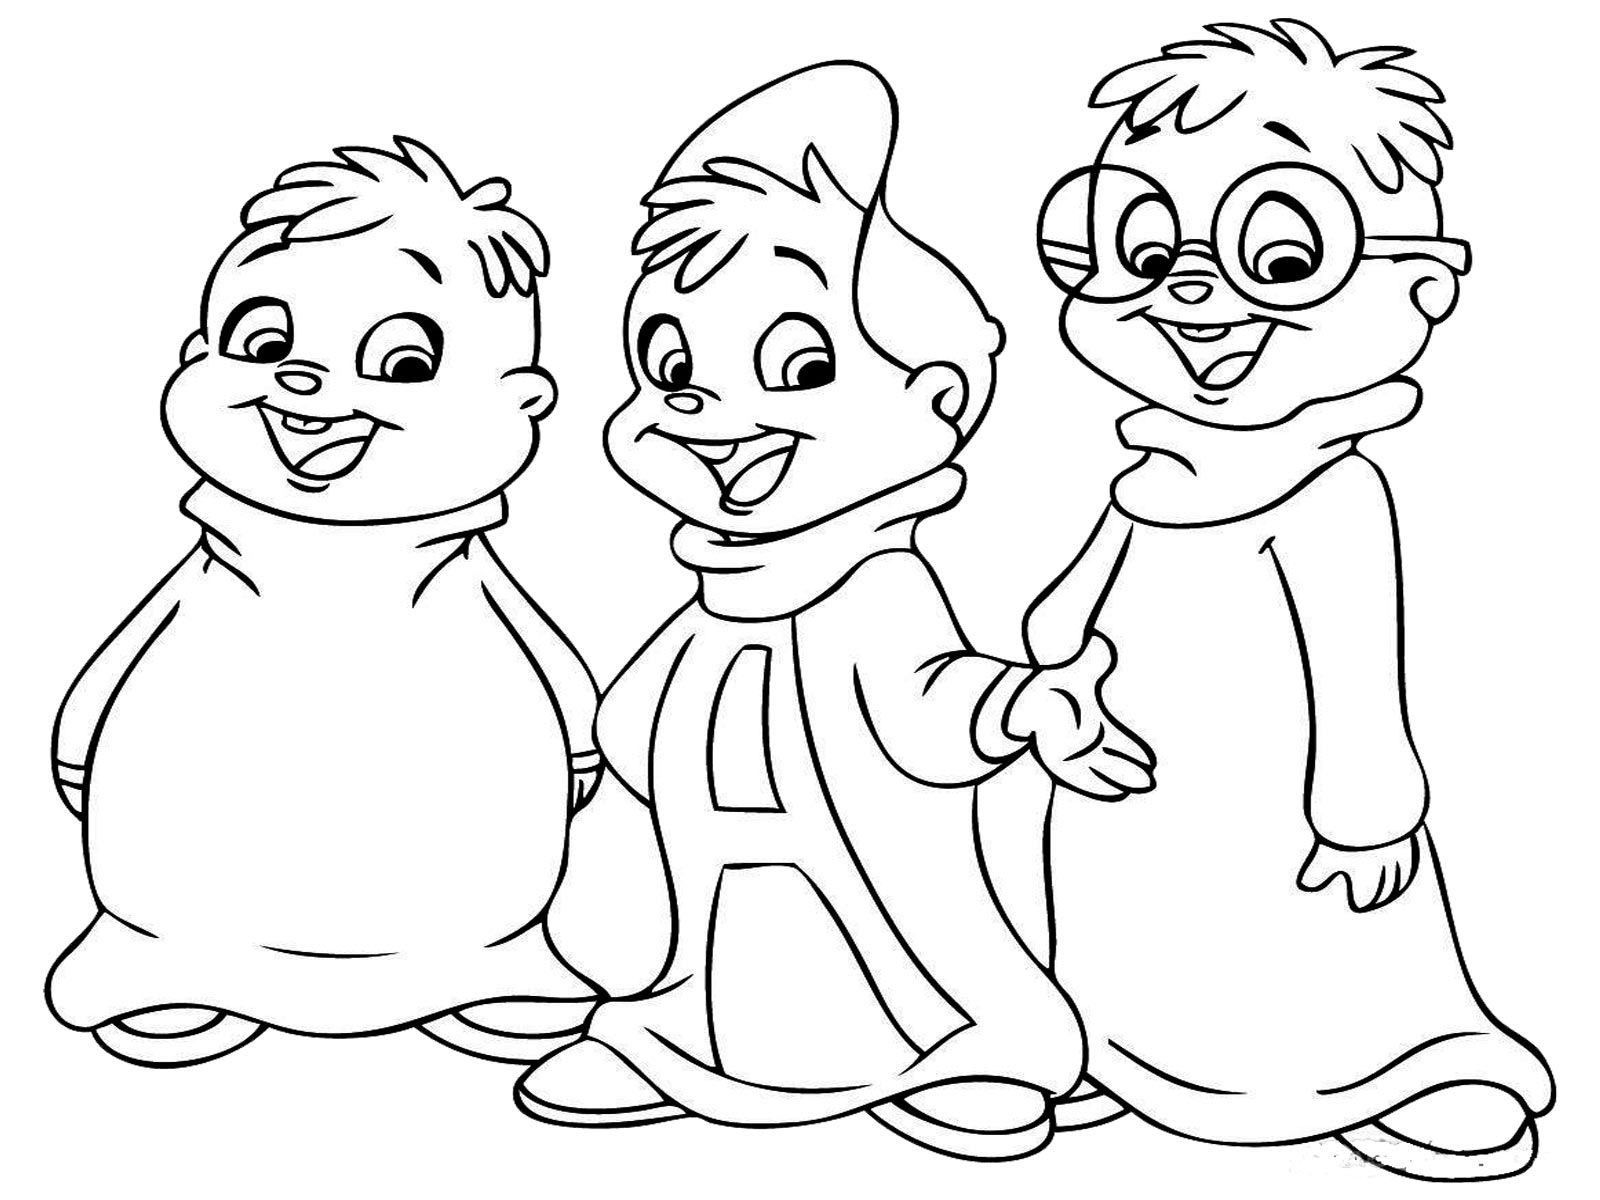 90s Cartoons Coloring Pages